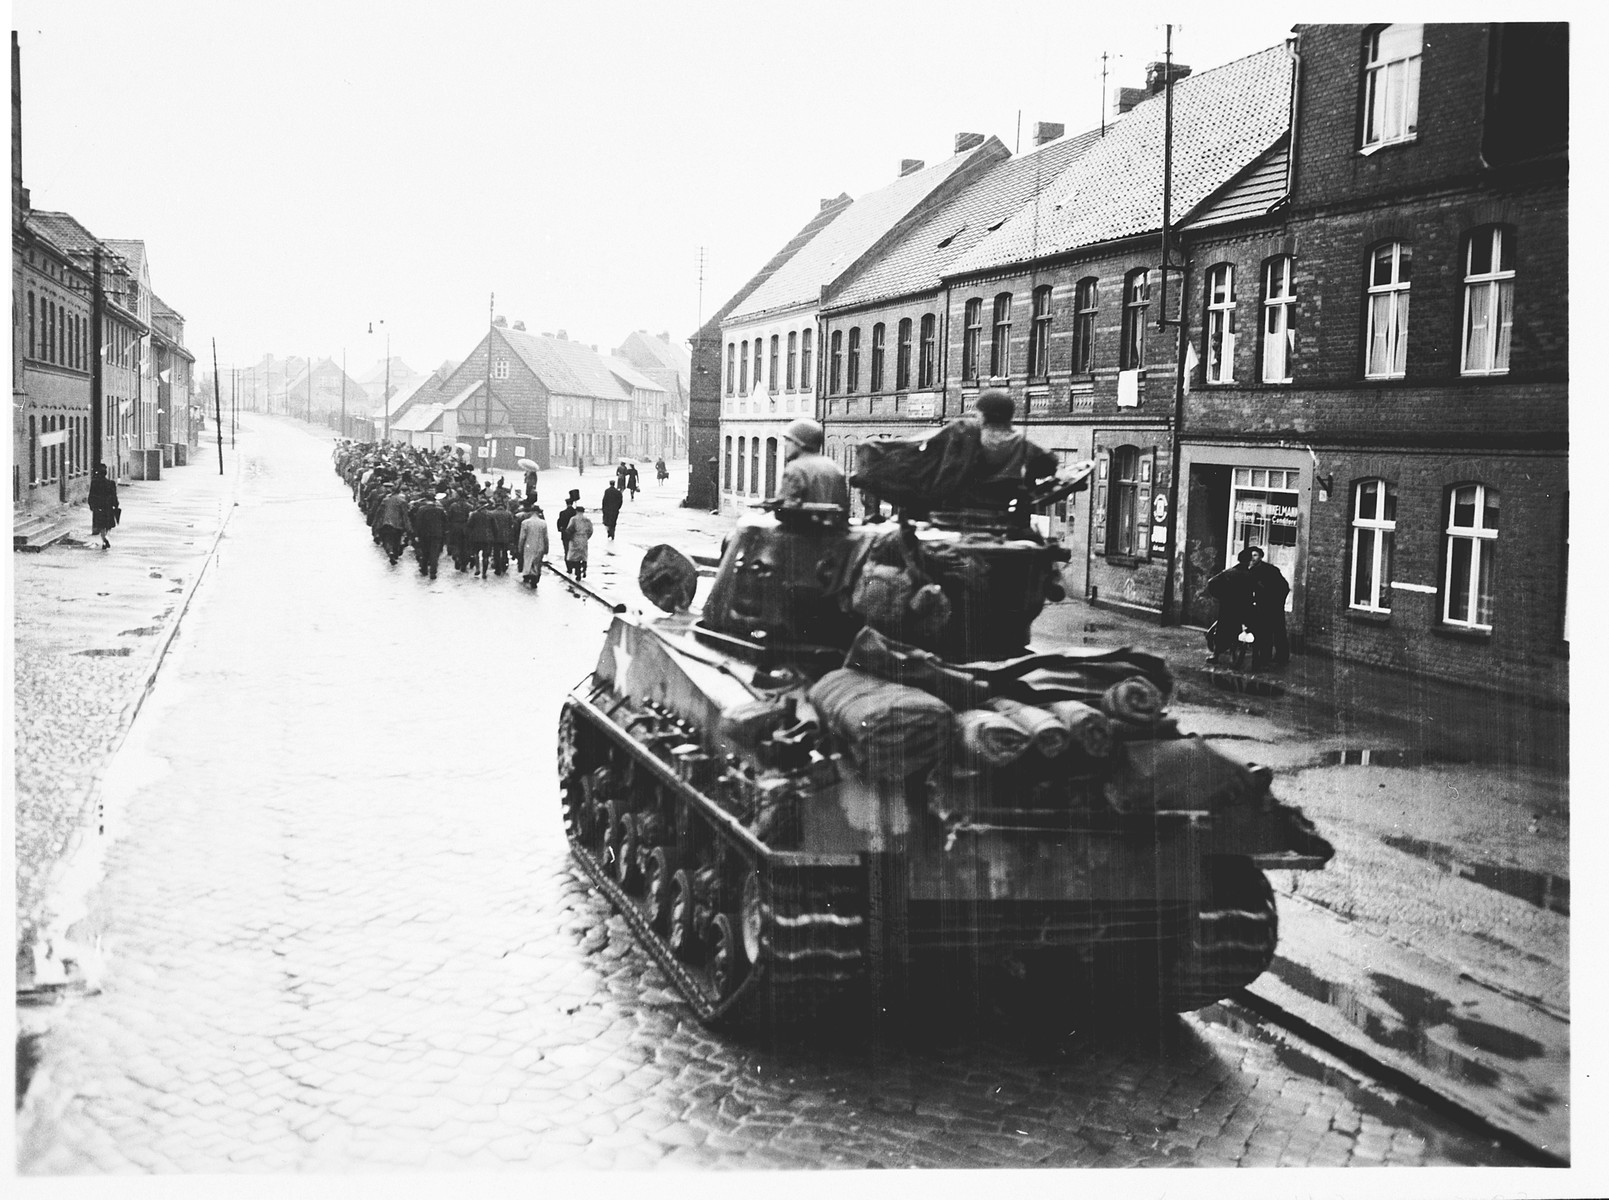 An American tank follows German civilians from Gardelegen who are marching to a barn just outside the town, where they will dig graves for over 1,000 prisoners killed by the SS inside the barn.